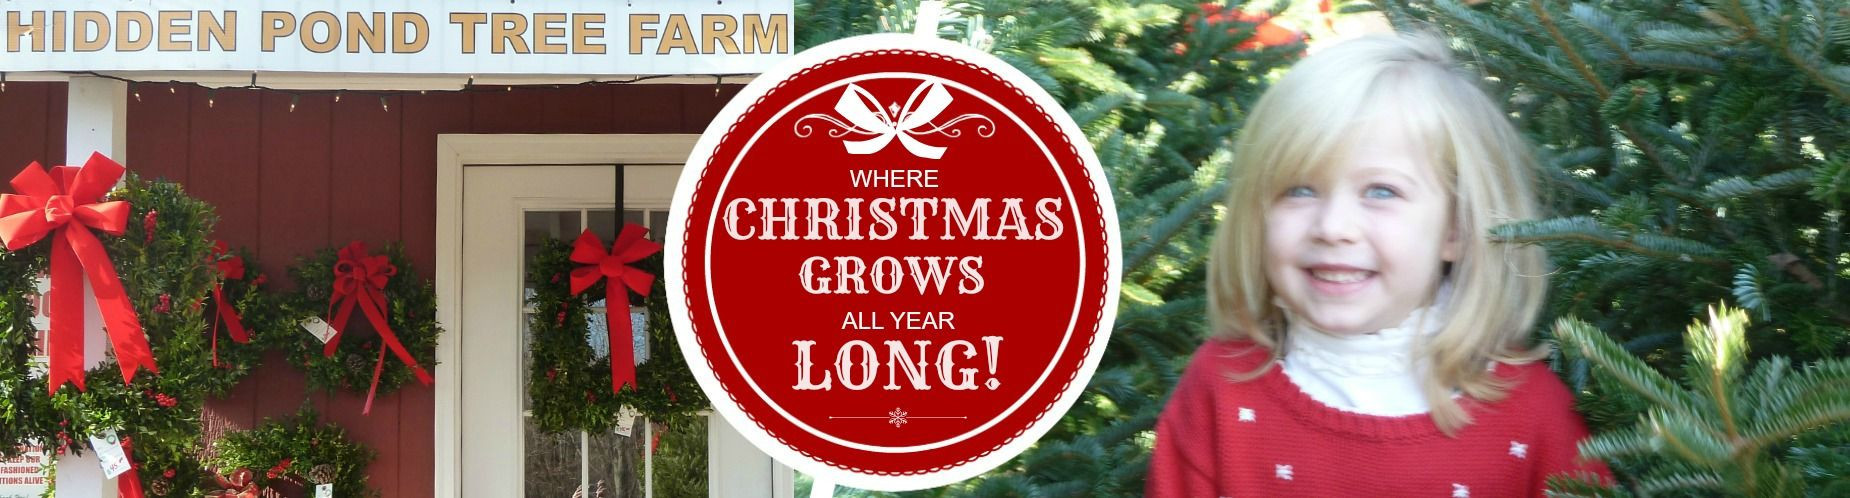 Christmas Grow ALl Year Long